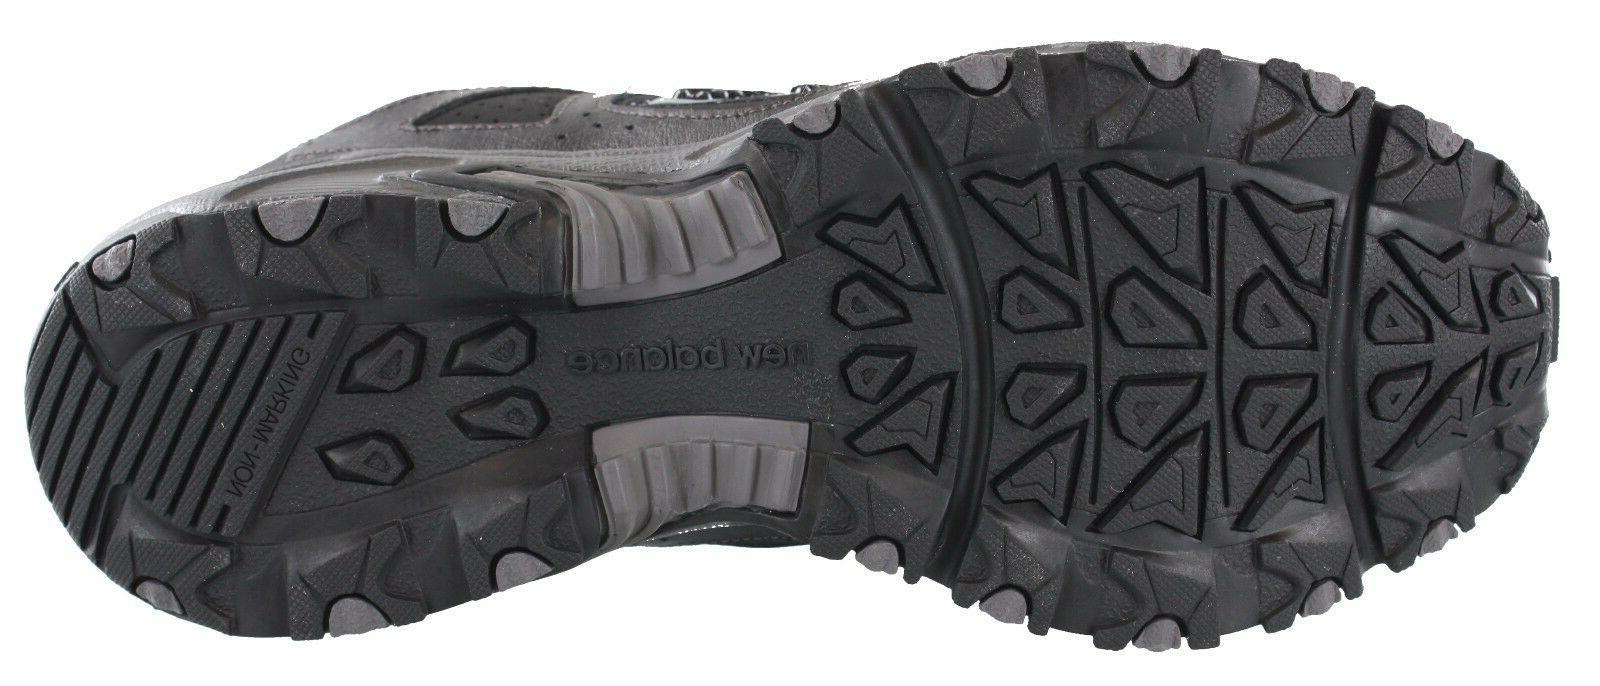 4E WIDE WIDTH TRAIL RUNNING SHOES